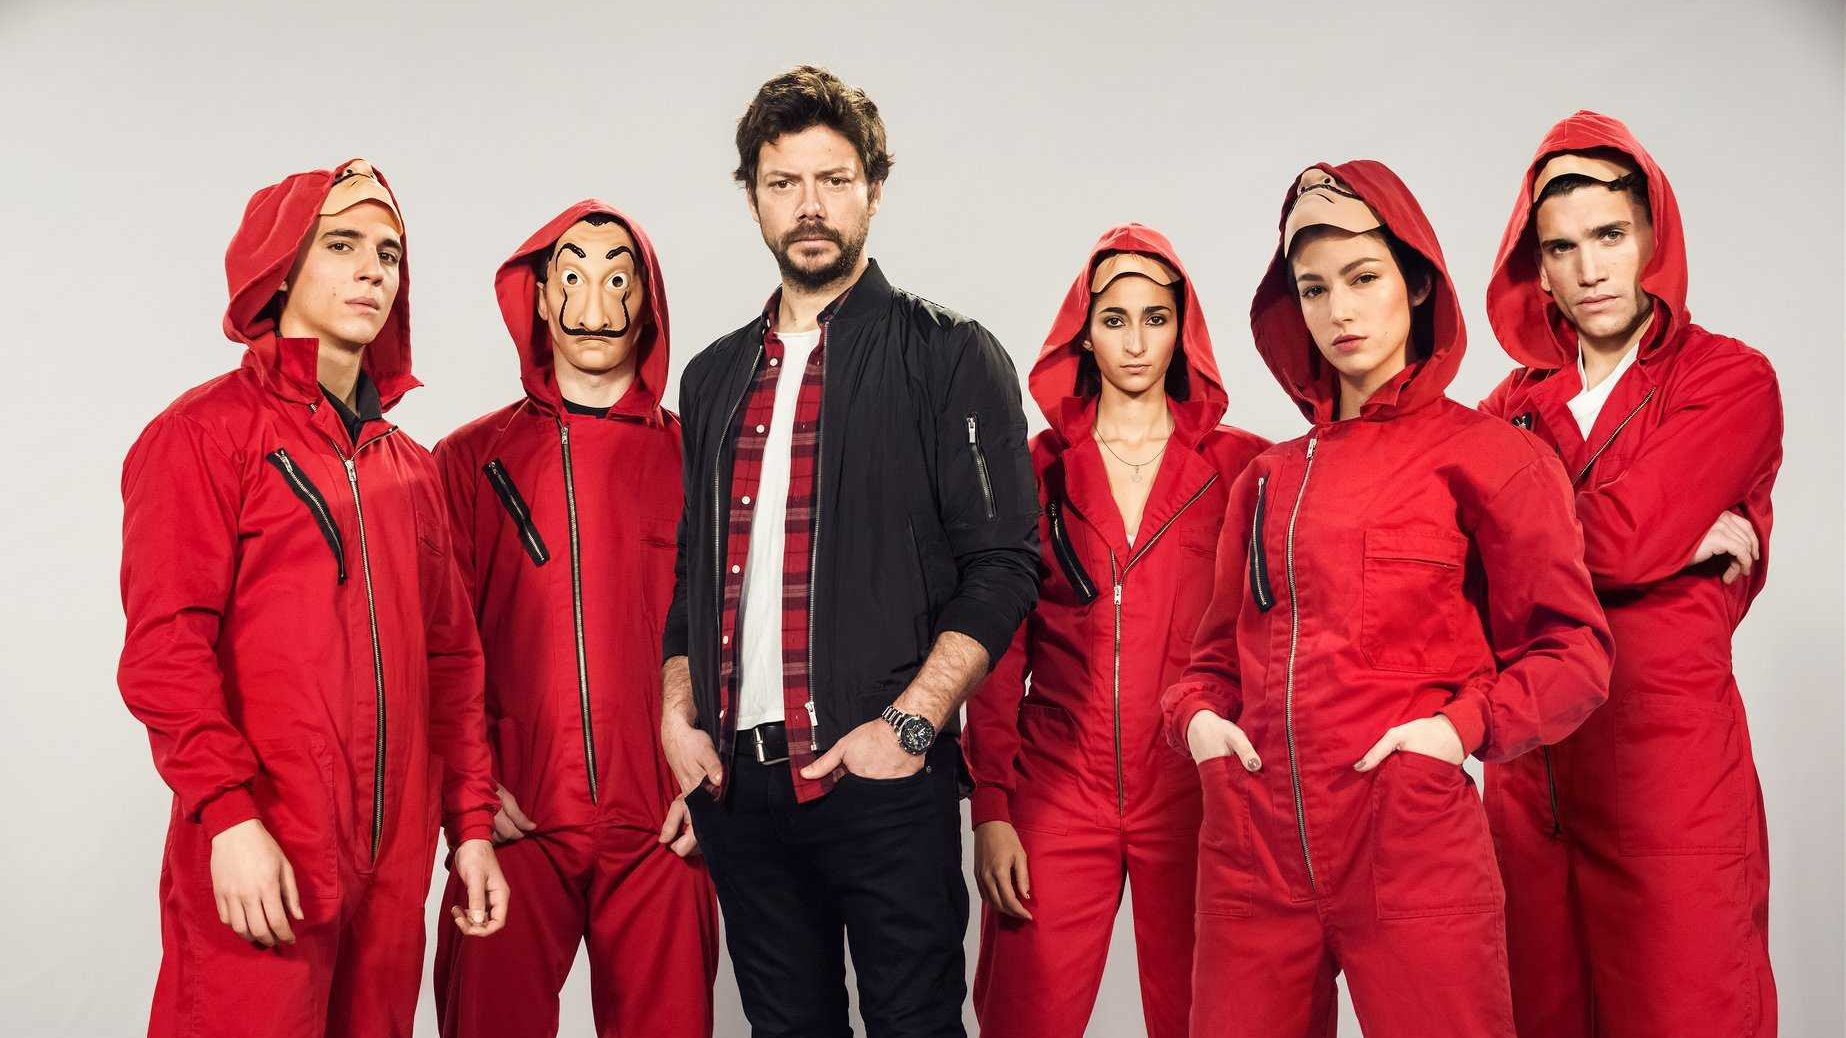 Money Heist is back with another season, now with a bigger heist